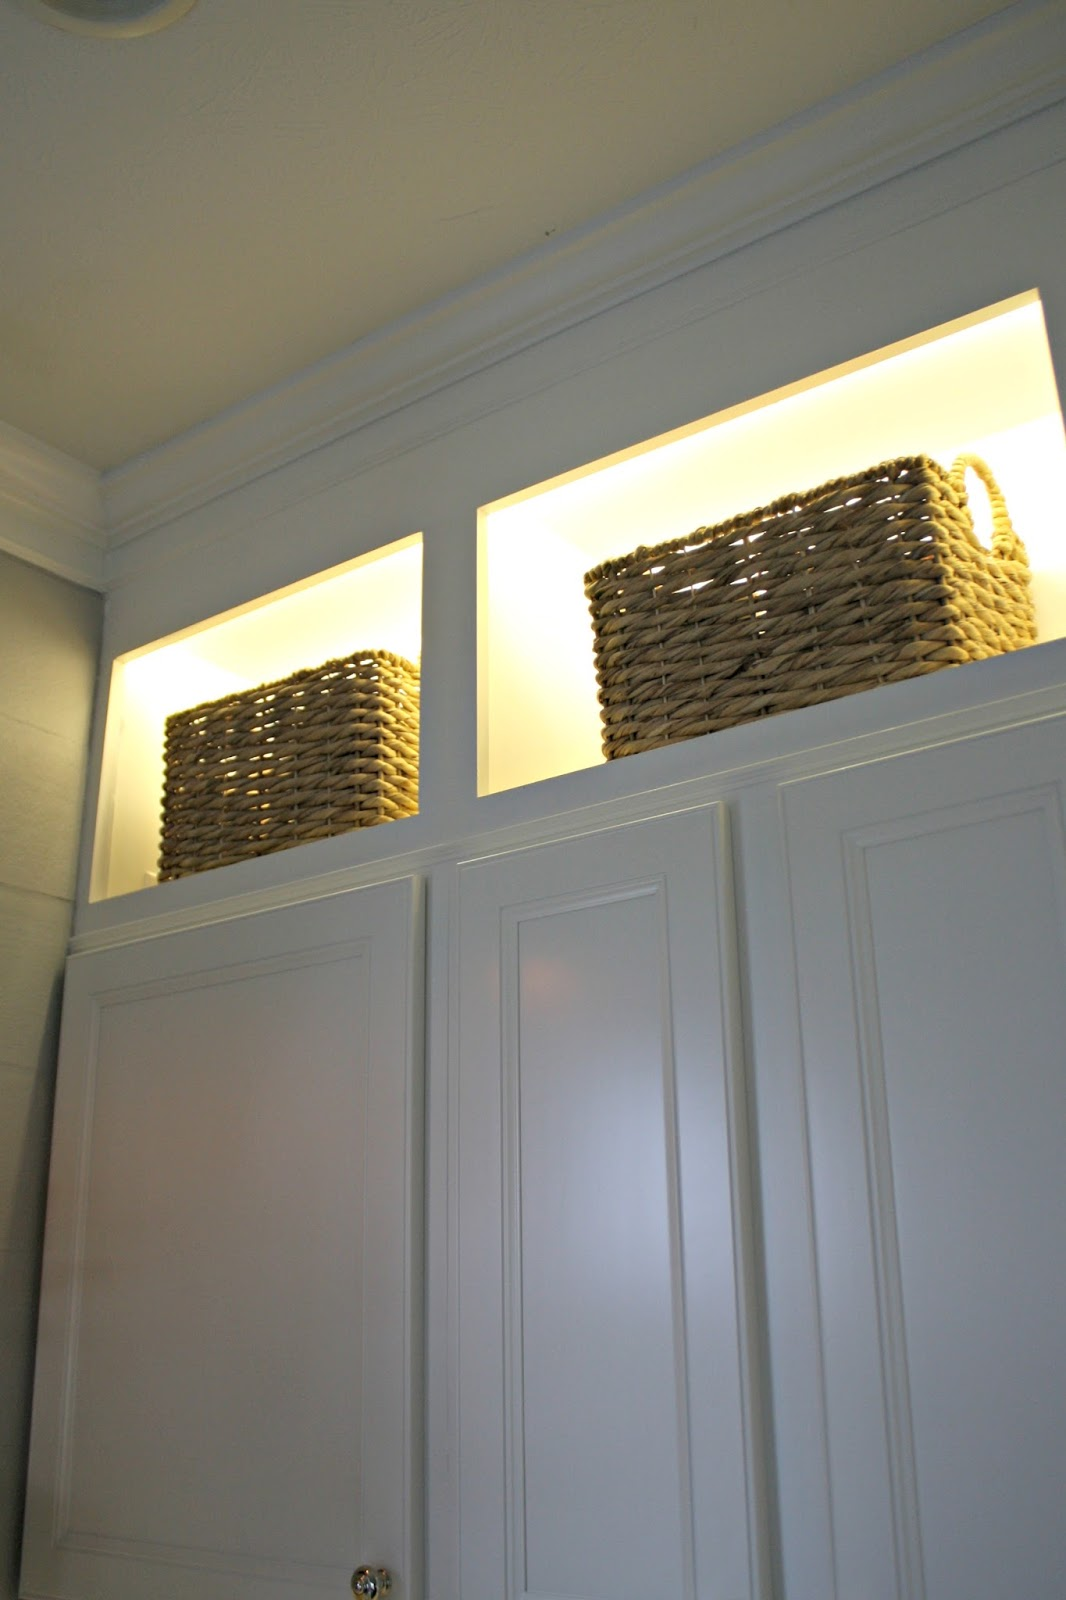 lighting for cabinets. Accent Lighting In Cabinets For G